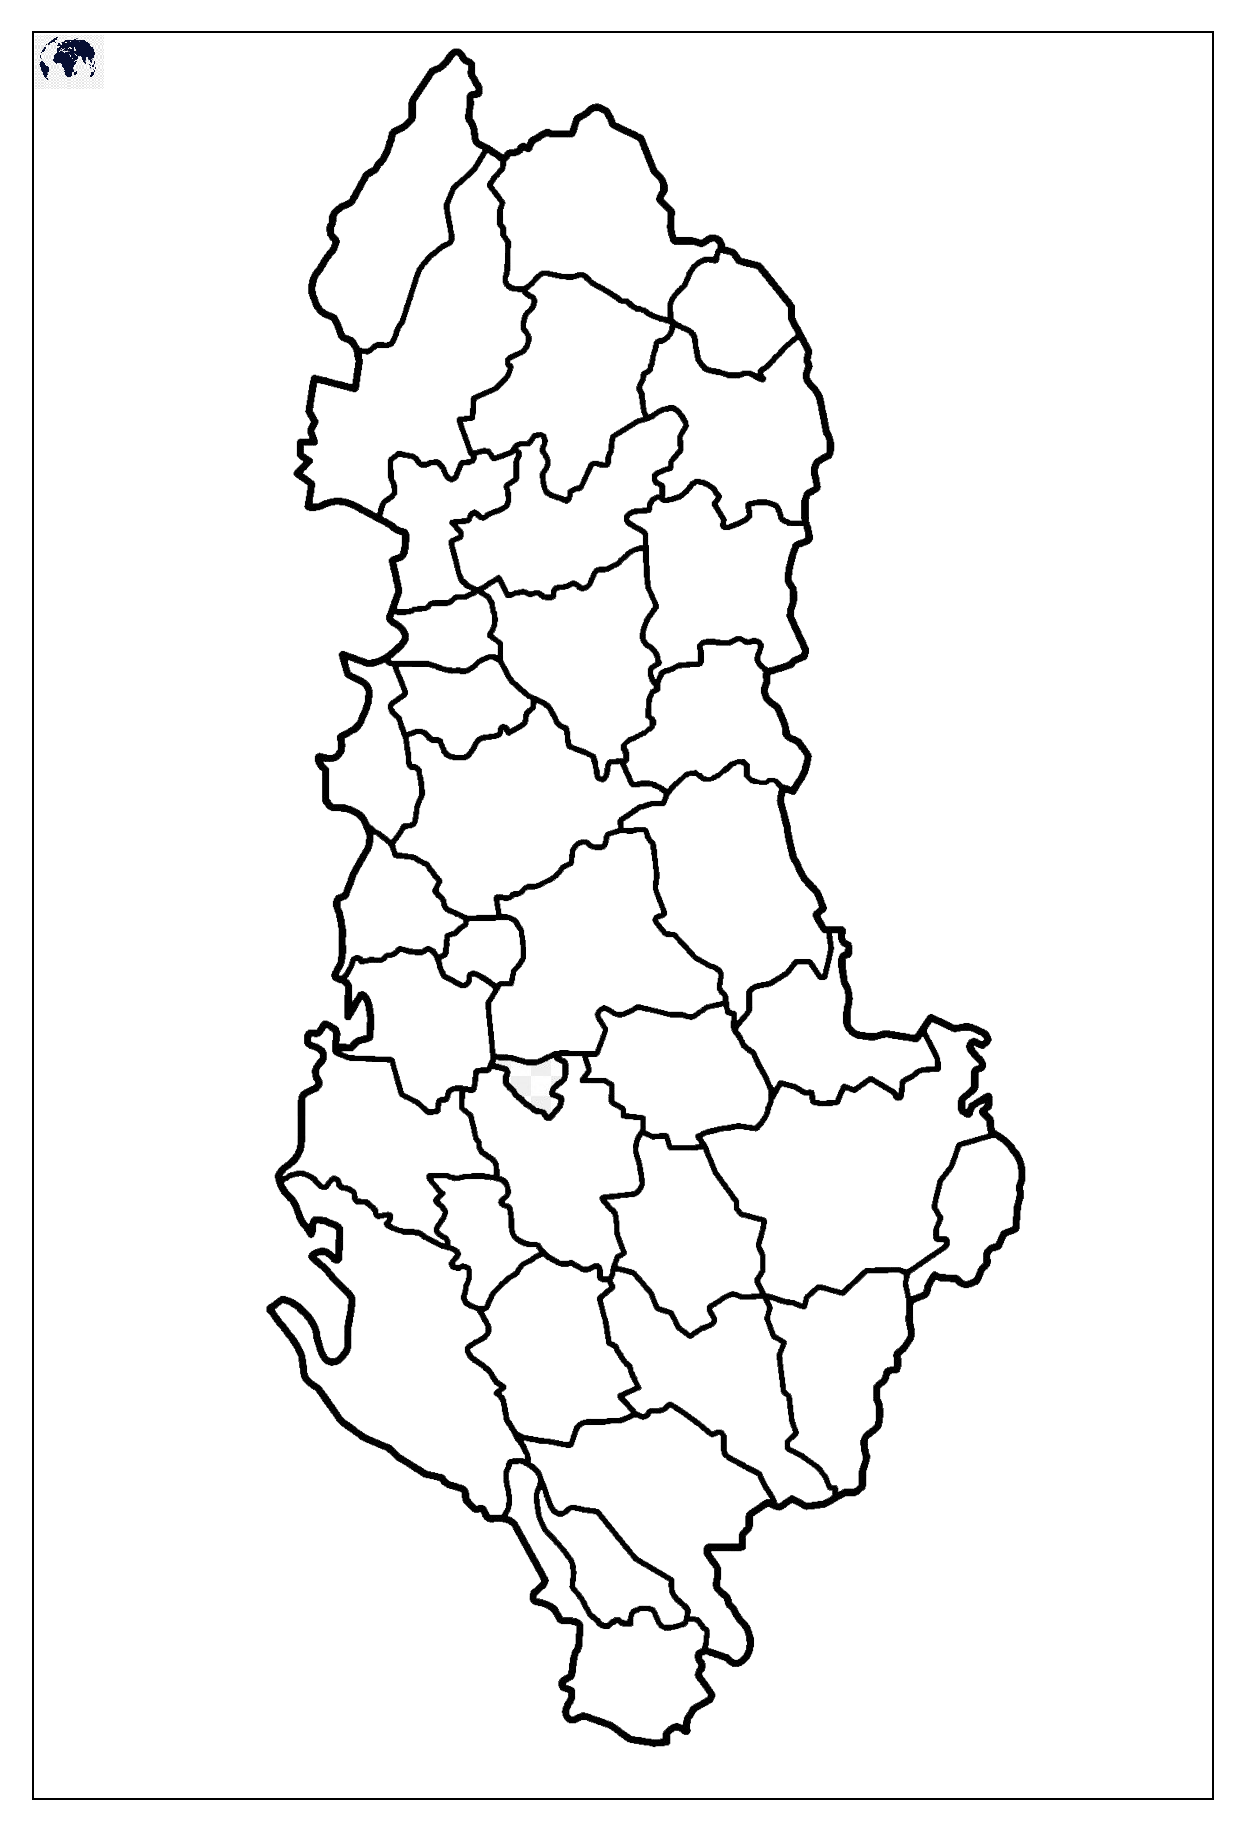 Map of Albania for Practice Worksheet